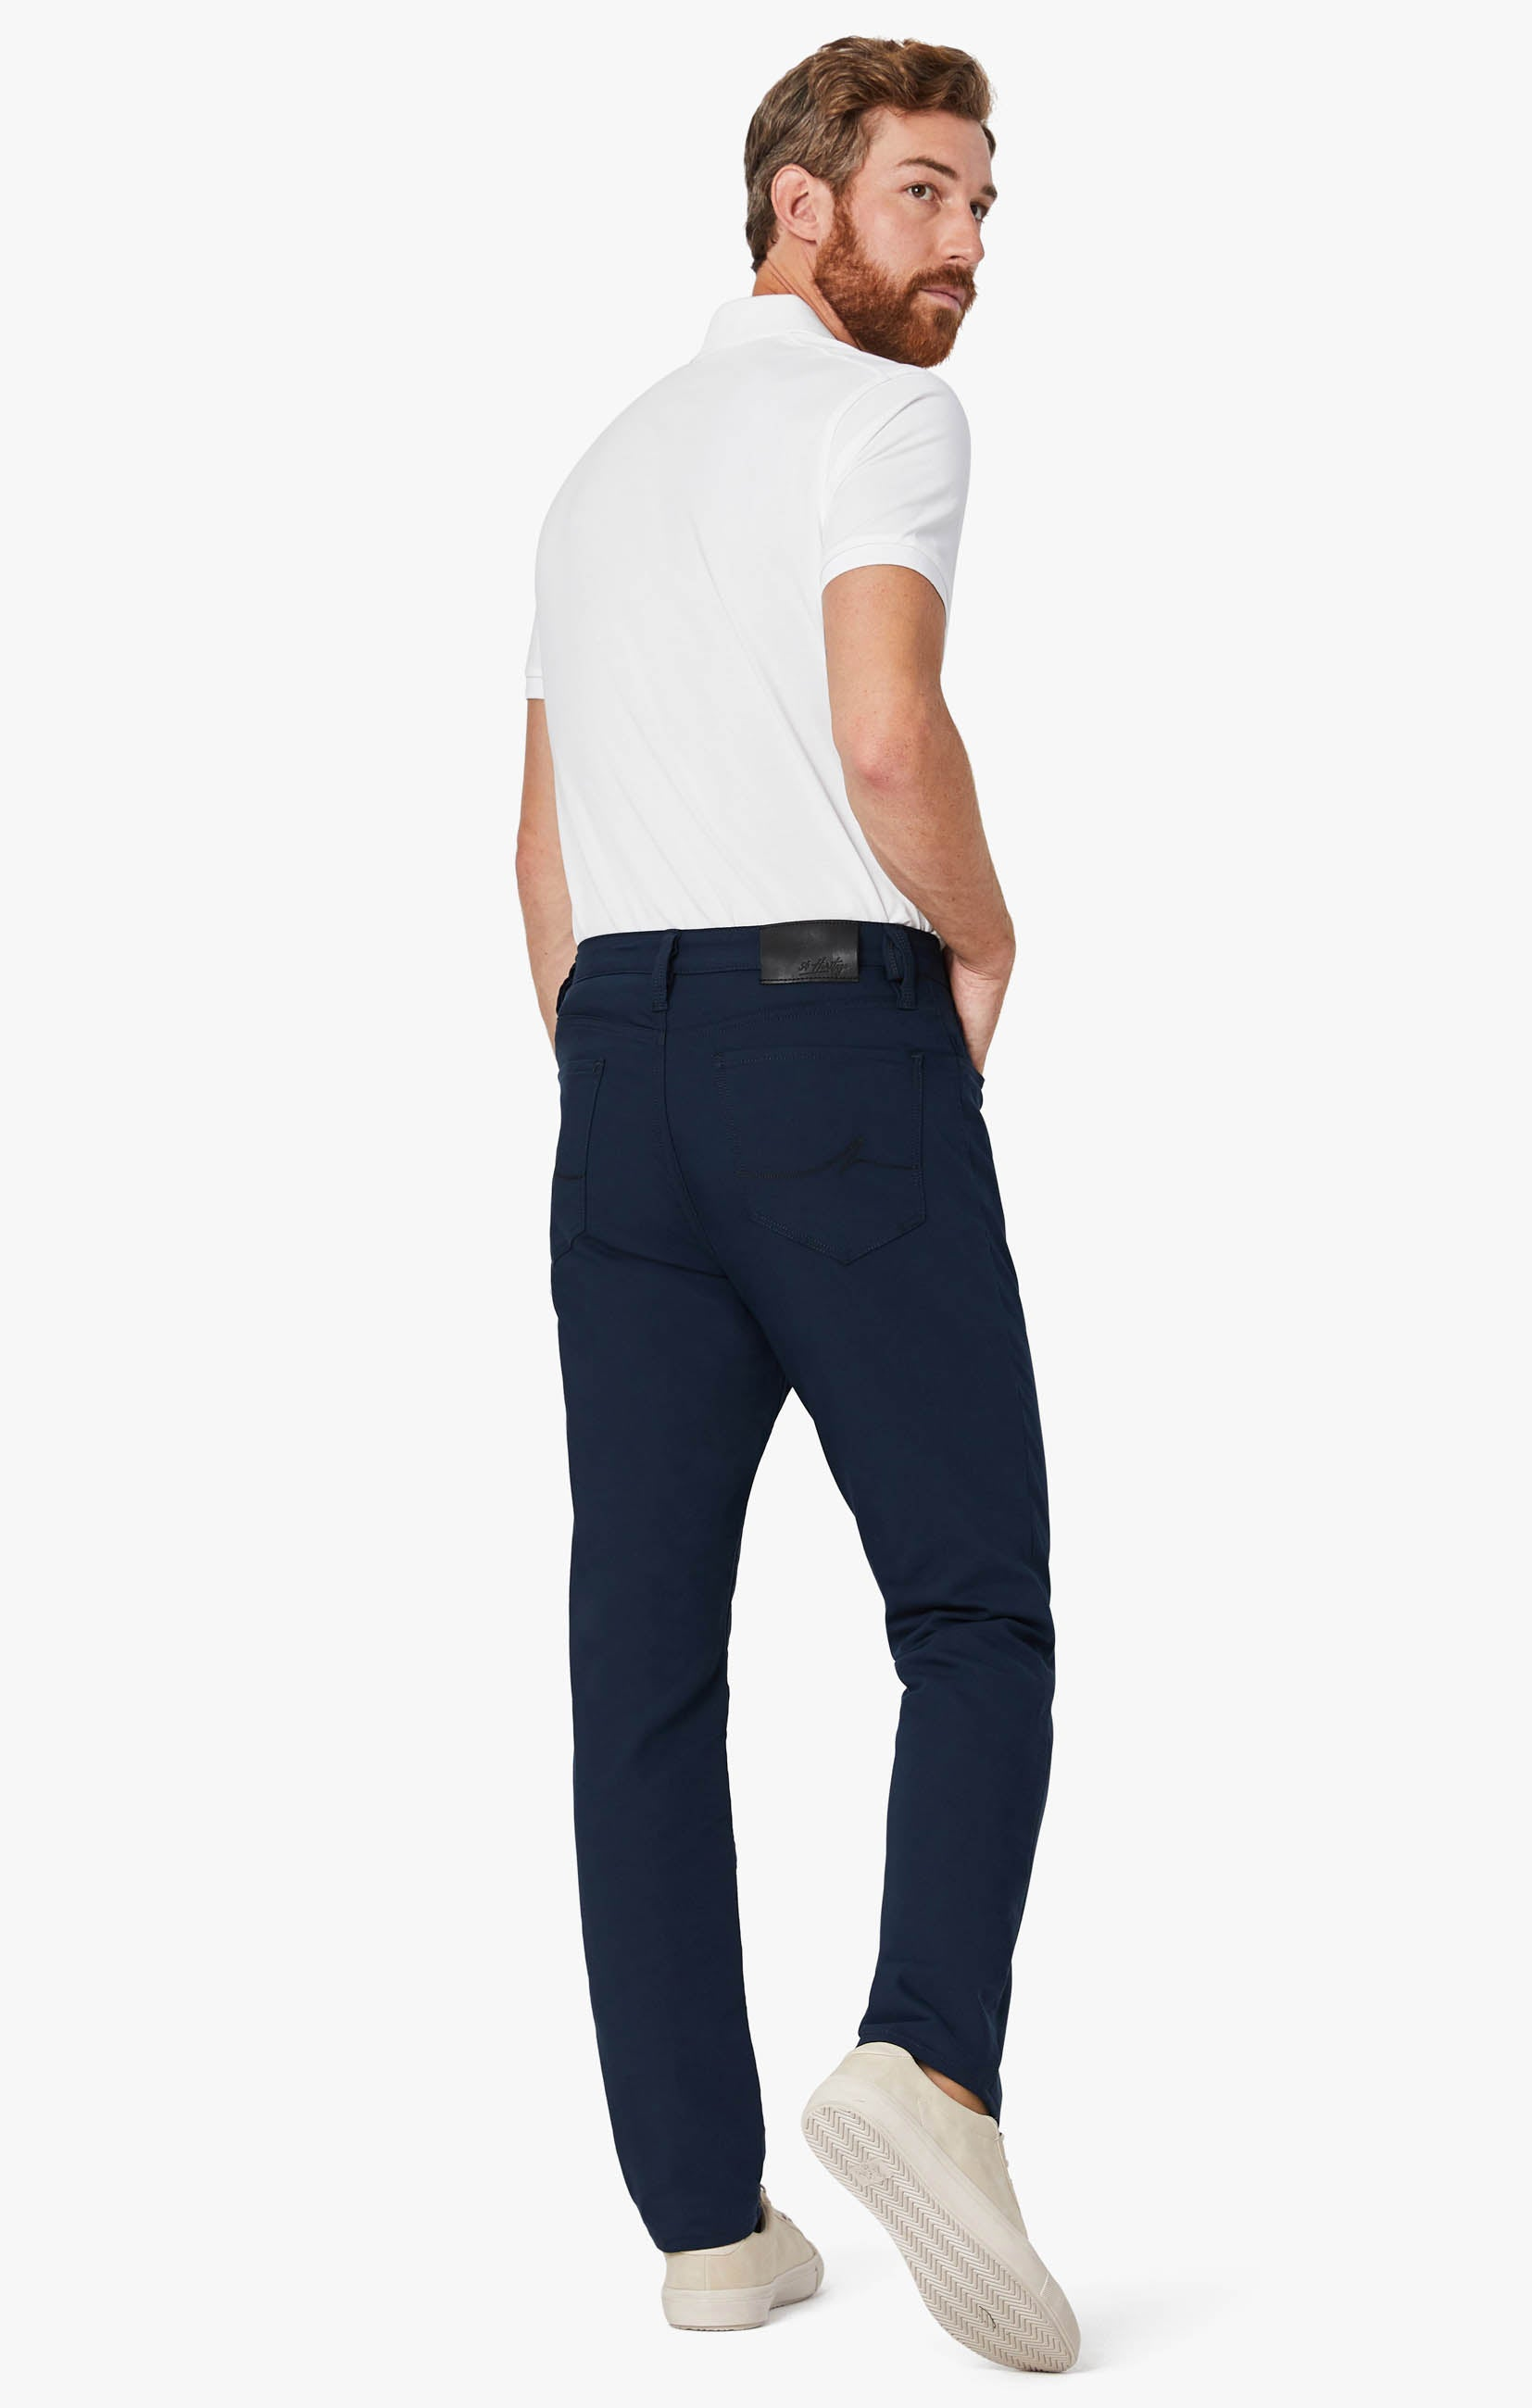 Charisma Relaxed Straight Commuter Pants In Navy Image 3